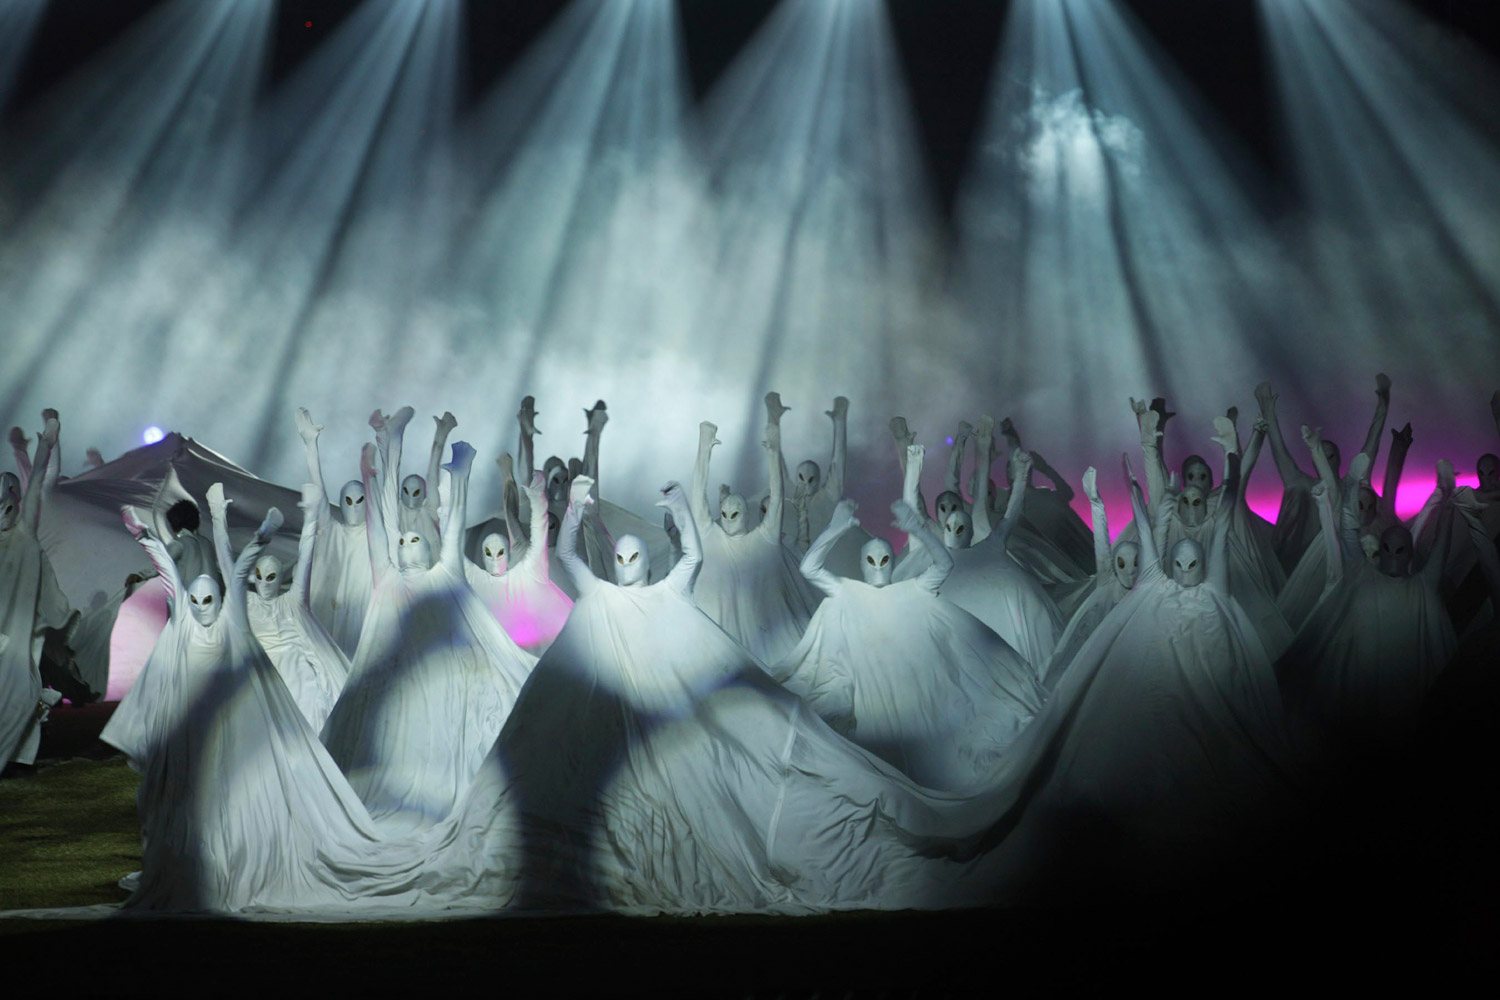 November 20, 2011. Artists perform during the closing ceremony of the Kabaddi World Cup in the Indian city of Ludhiana. The event has been marred this year by evidence of rampant use of performance-enhancing drugs, resulting in more than 30 positive drug tests.